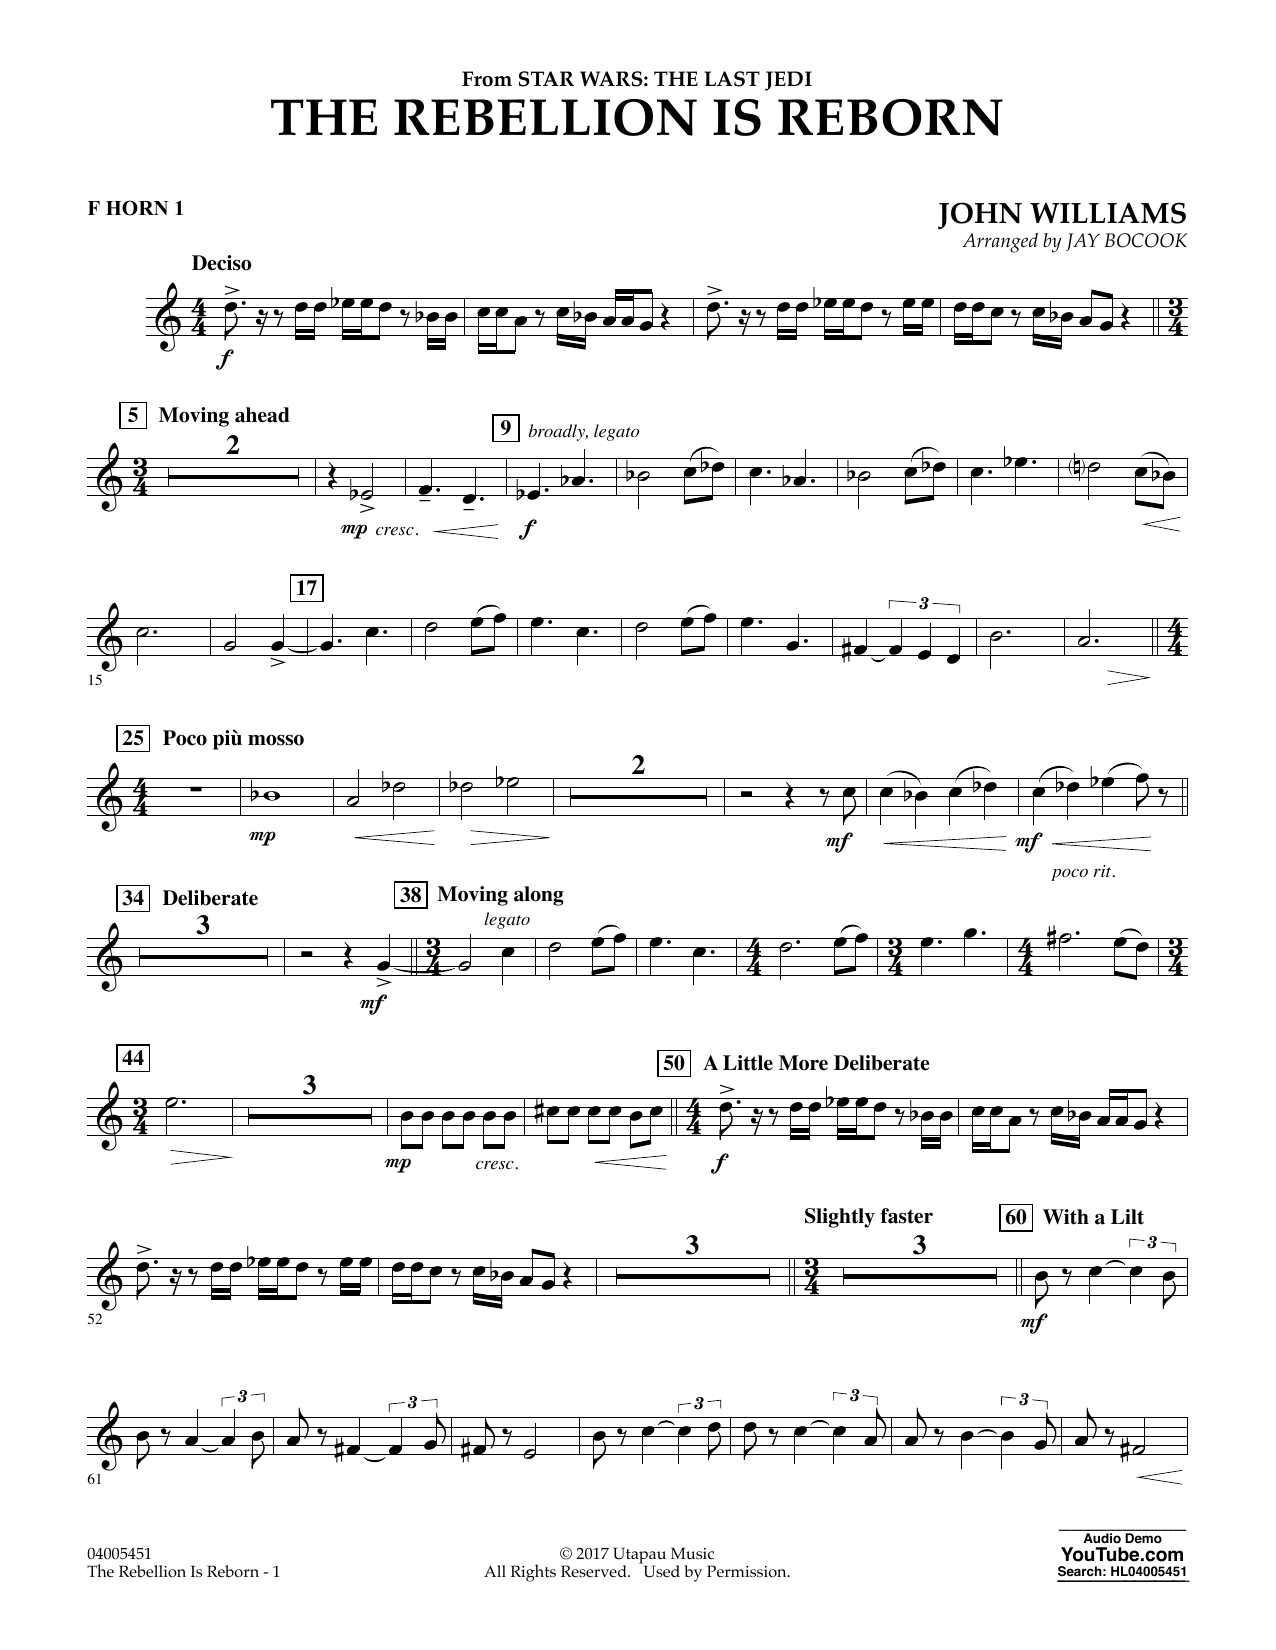 Jay Bocook The Rebellion Is Reborn (from Star Wars: The Last Jedi) - F Horn 1 sheet music notes and chords. Download Printable PDF.